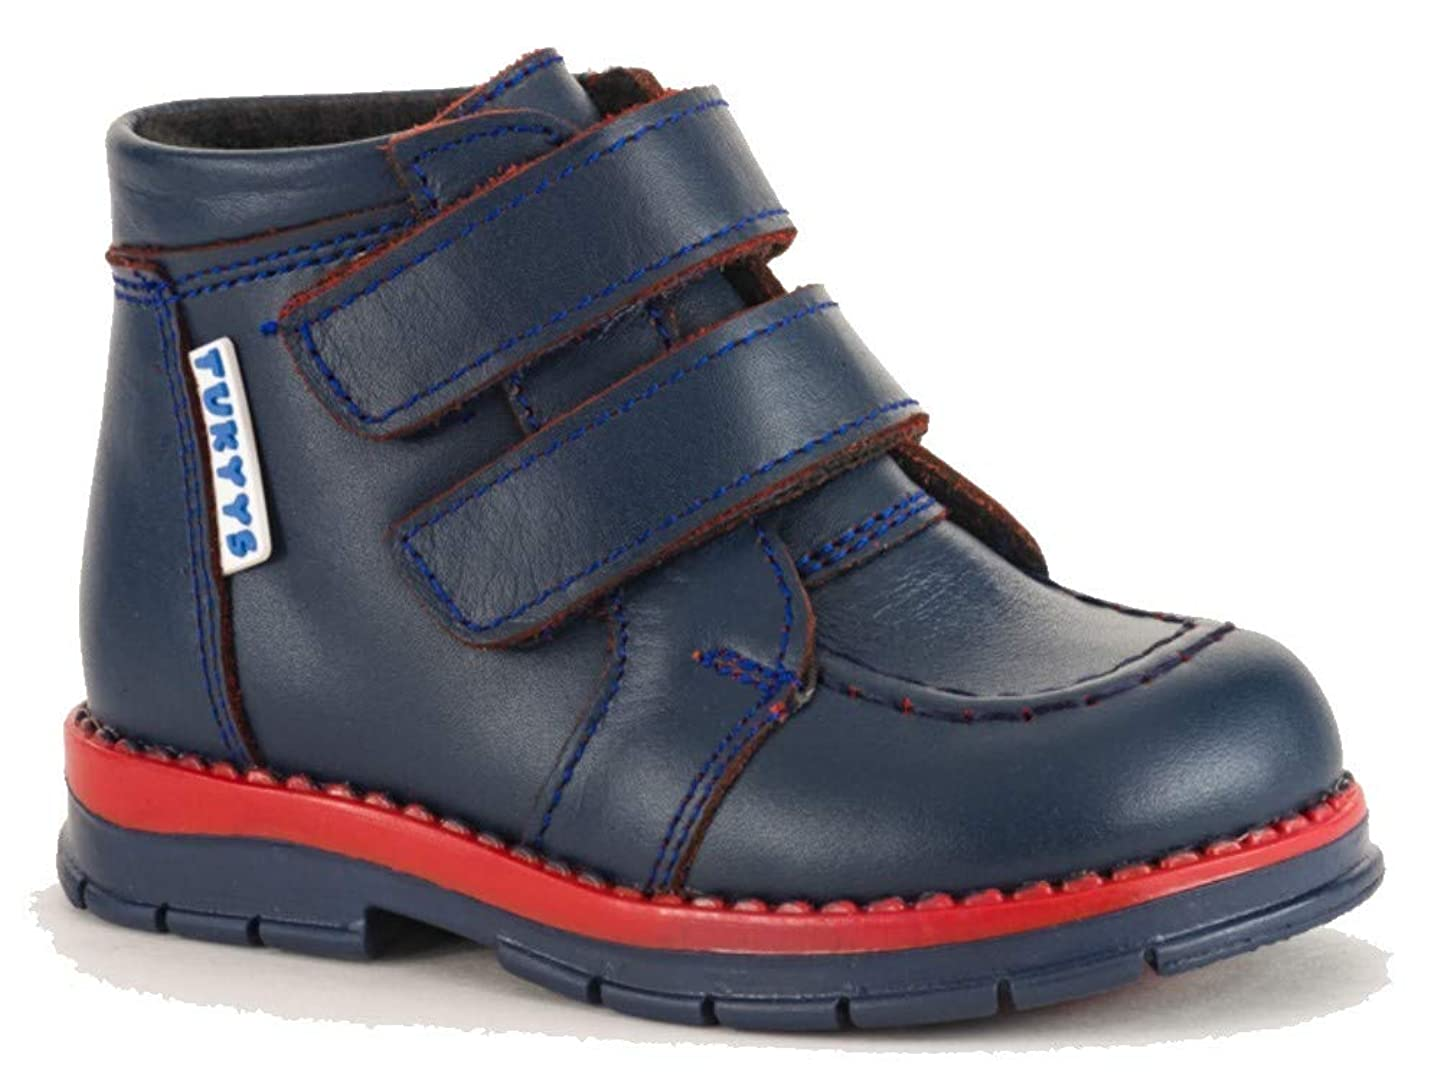 Tukyys Shoes for Boys/Girls Leather Waterproof Boots with Orthopedic Insole Wool Lining (Toddler) (Genuine Leather, US-6 EU-21) Dark Blue